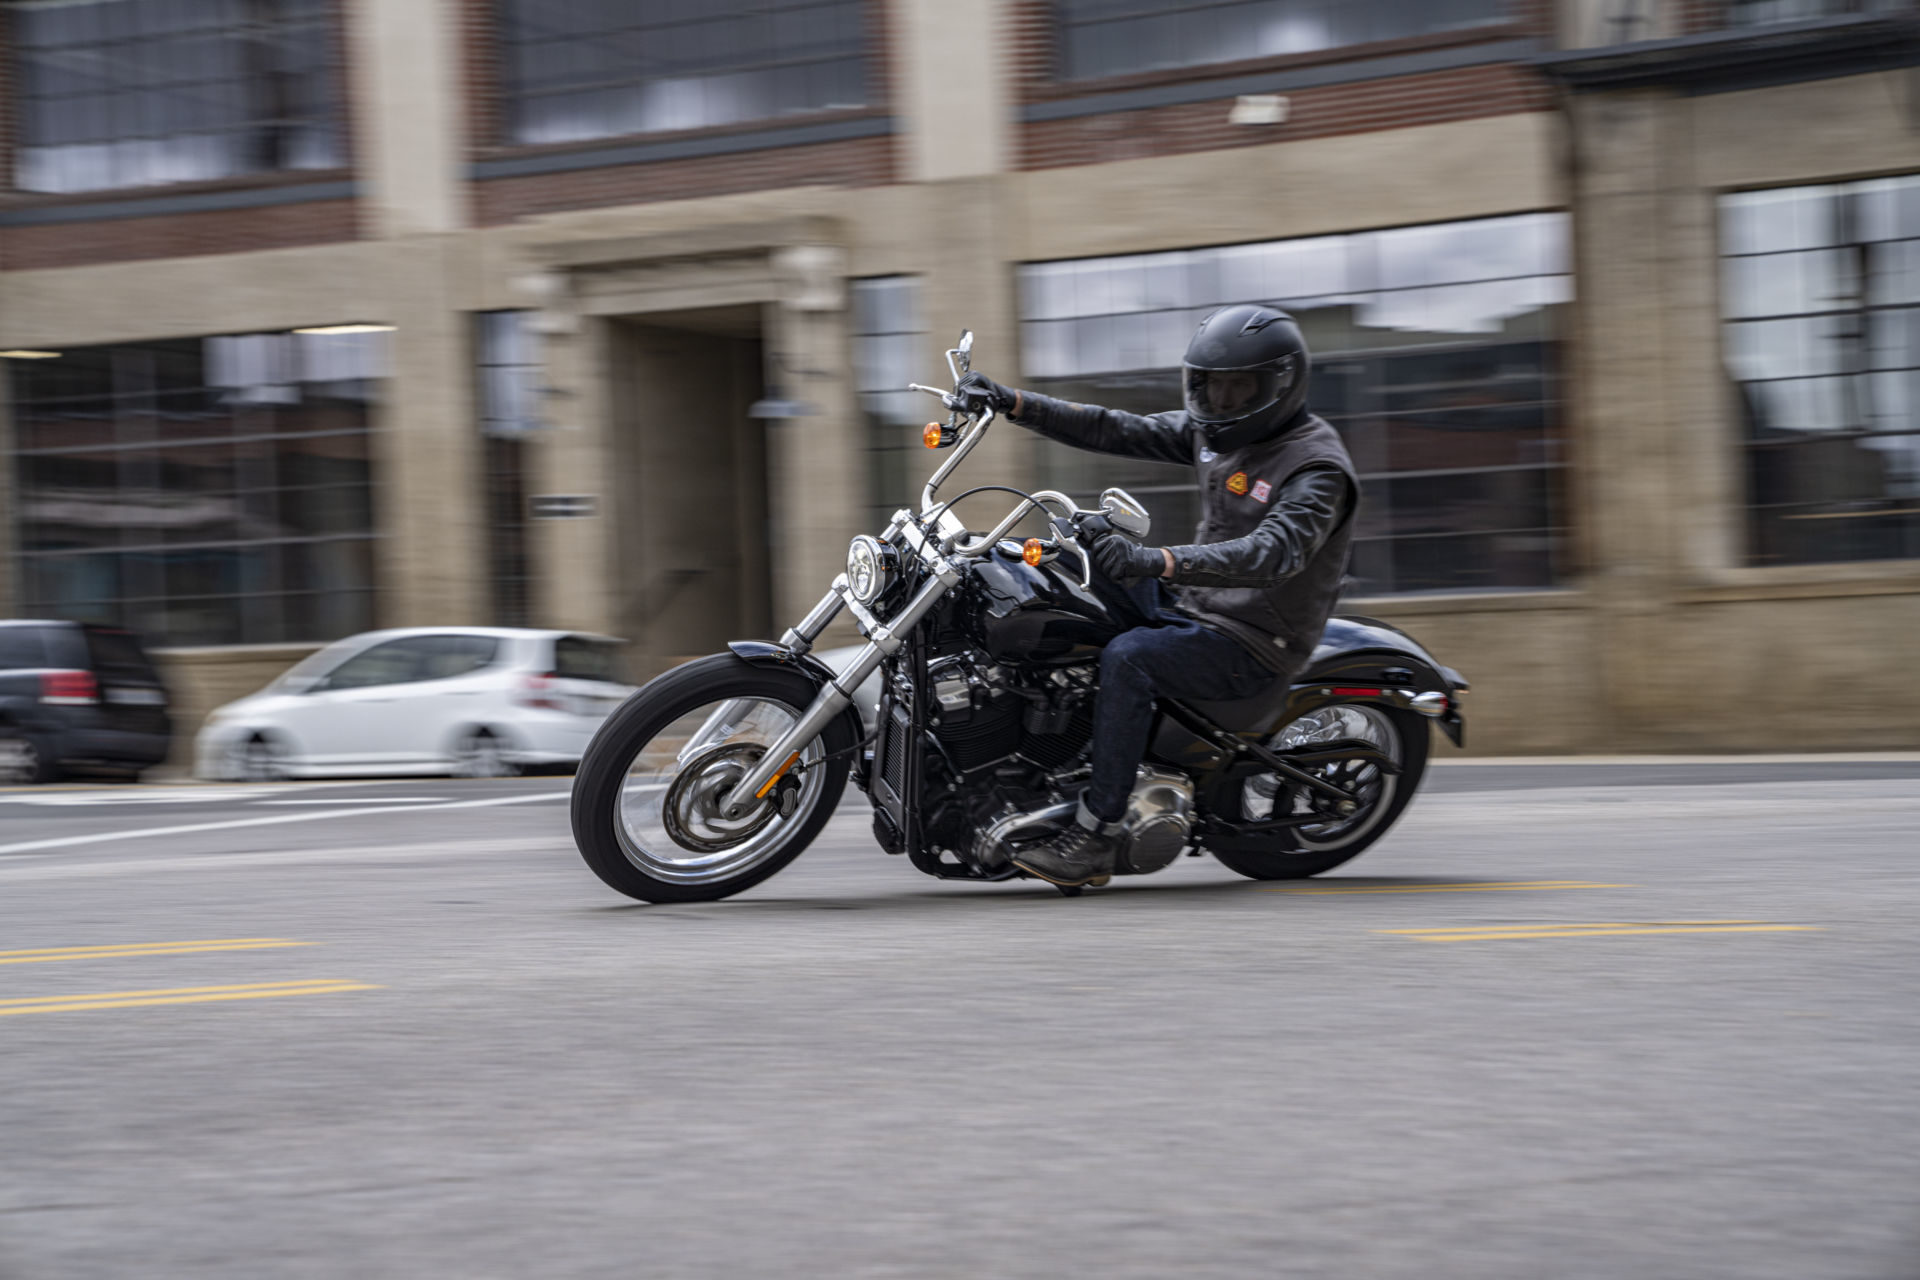 A 2020-model Harley-Davidson Softail Standard at speed. Photo courtesy of Harley-Davidson.